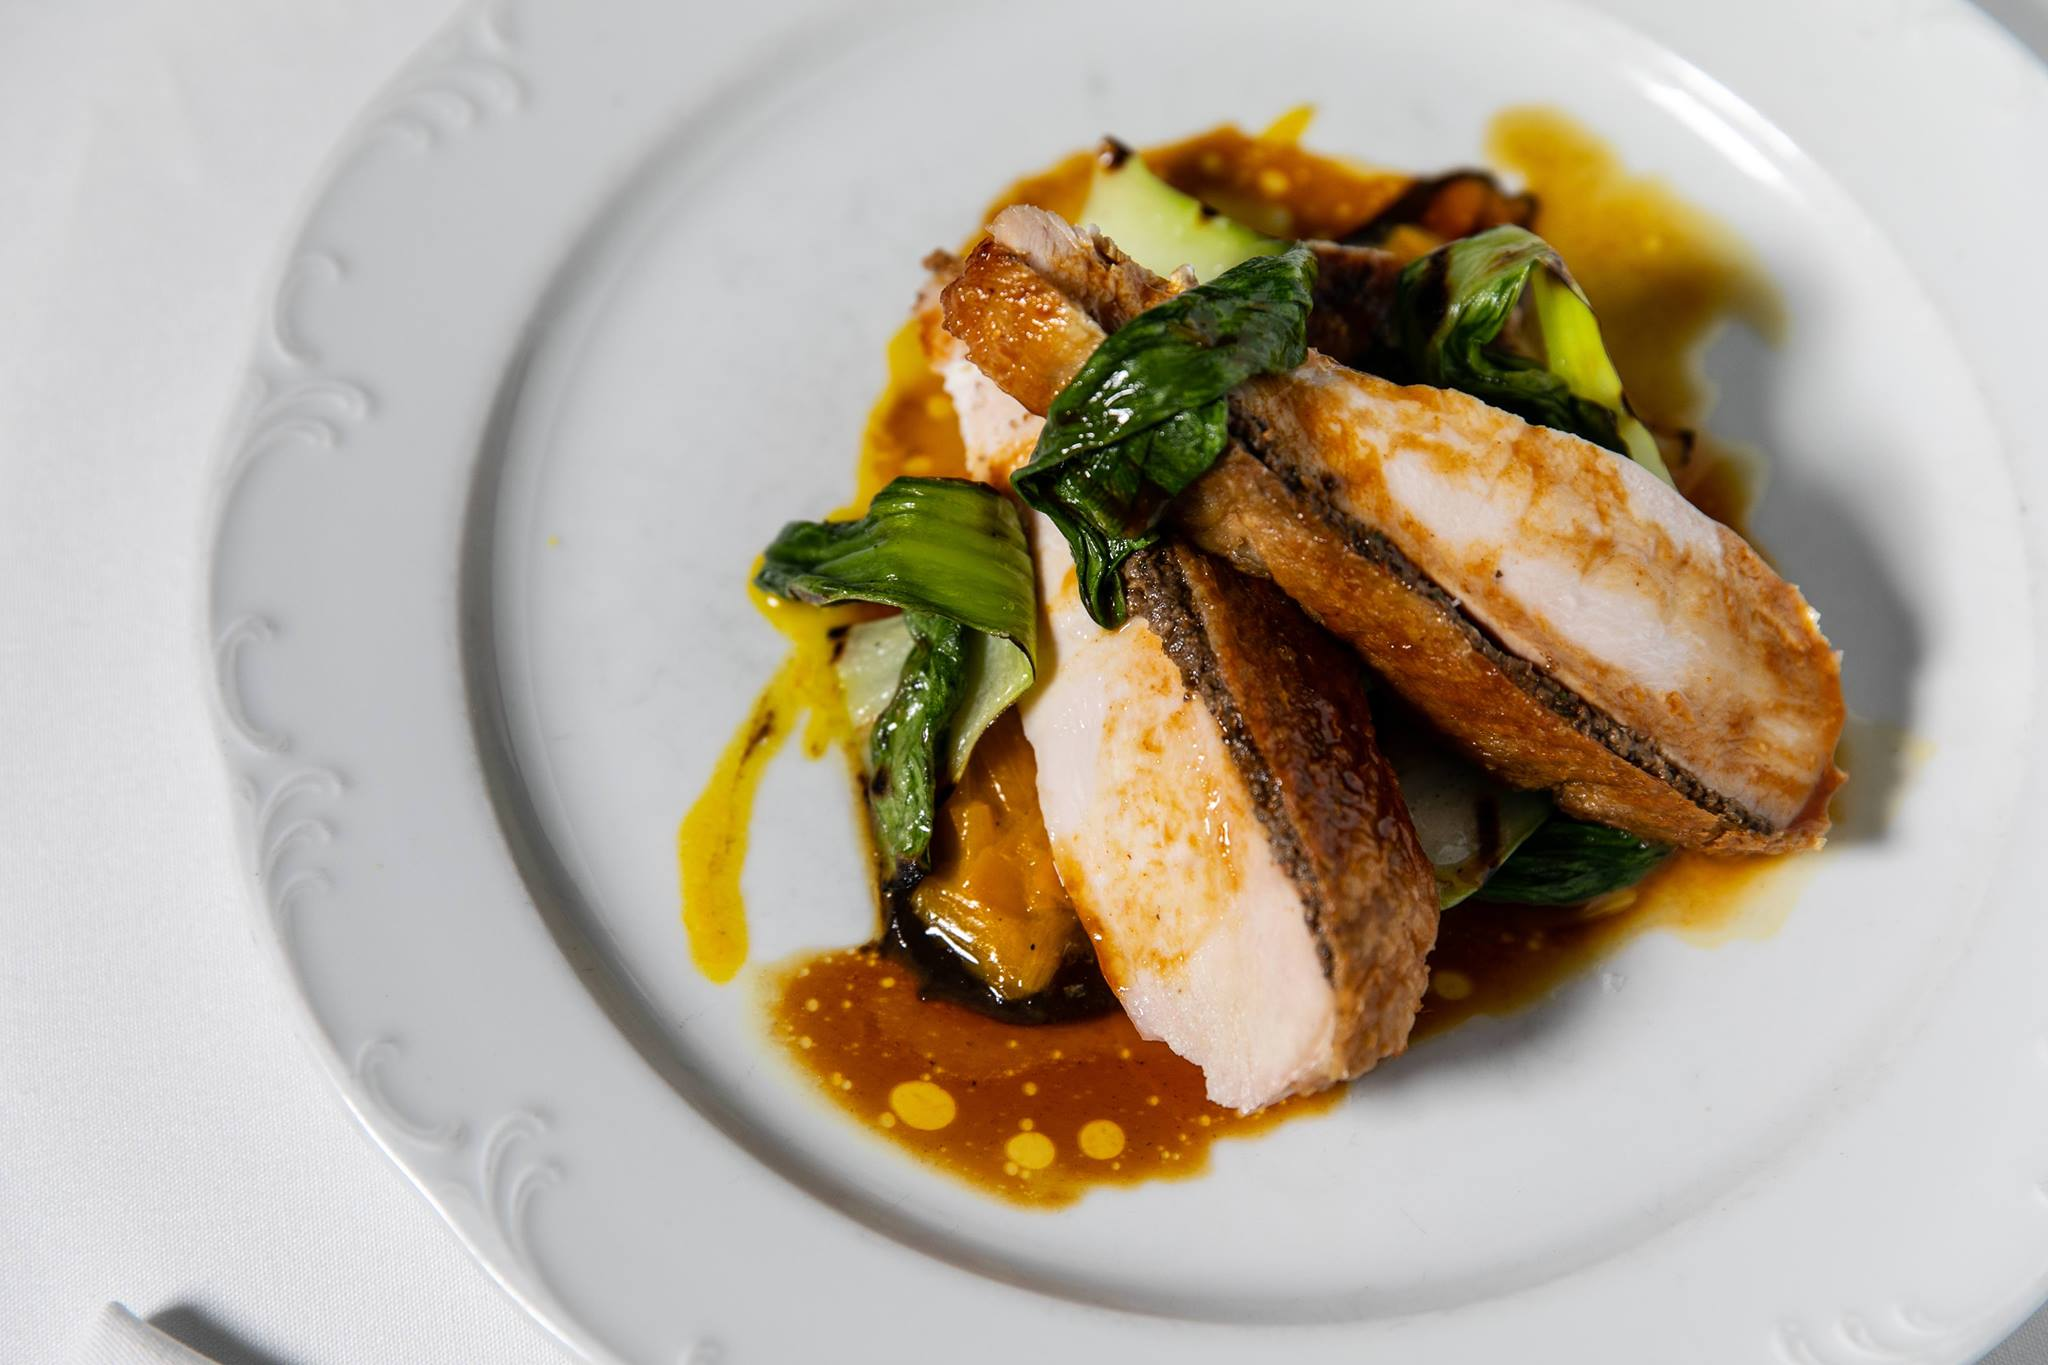 The Palto Roasted Chicken Dish